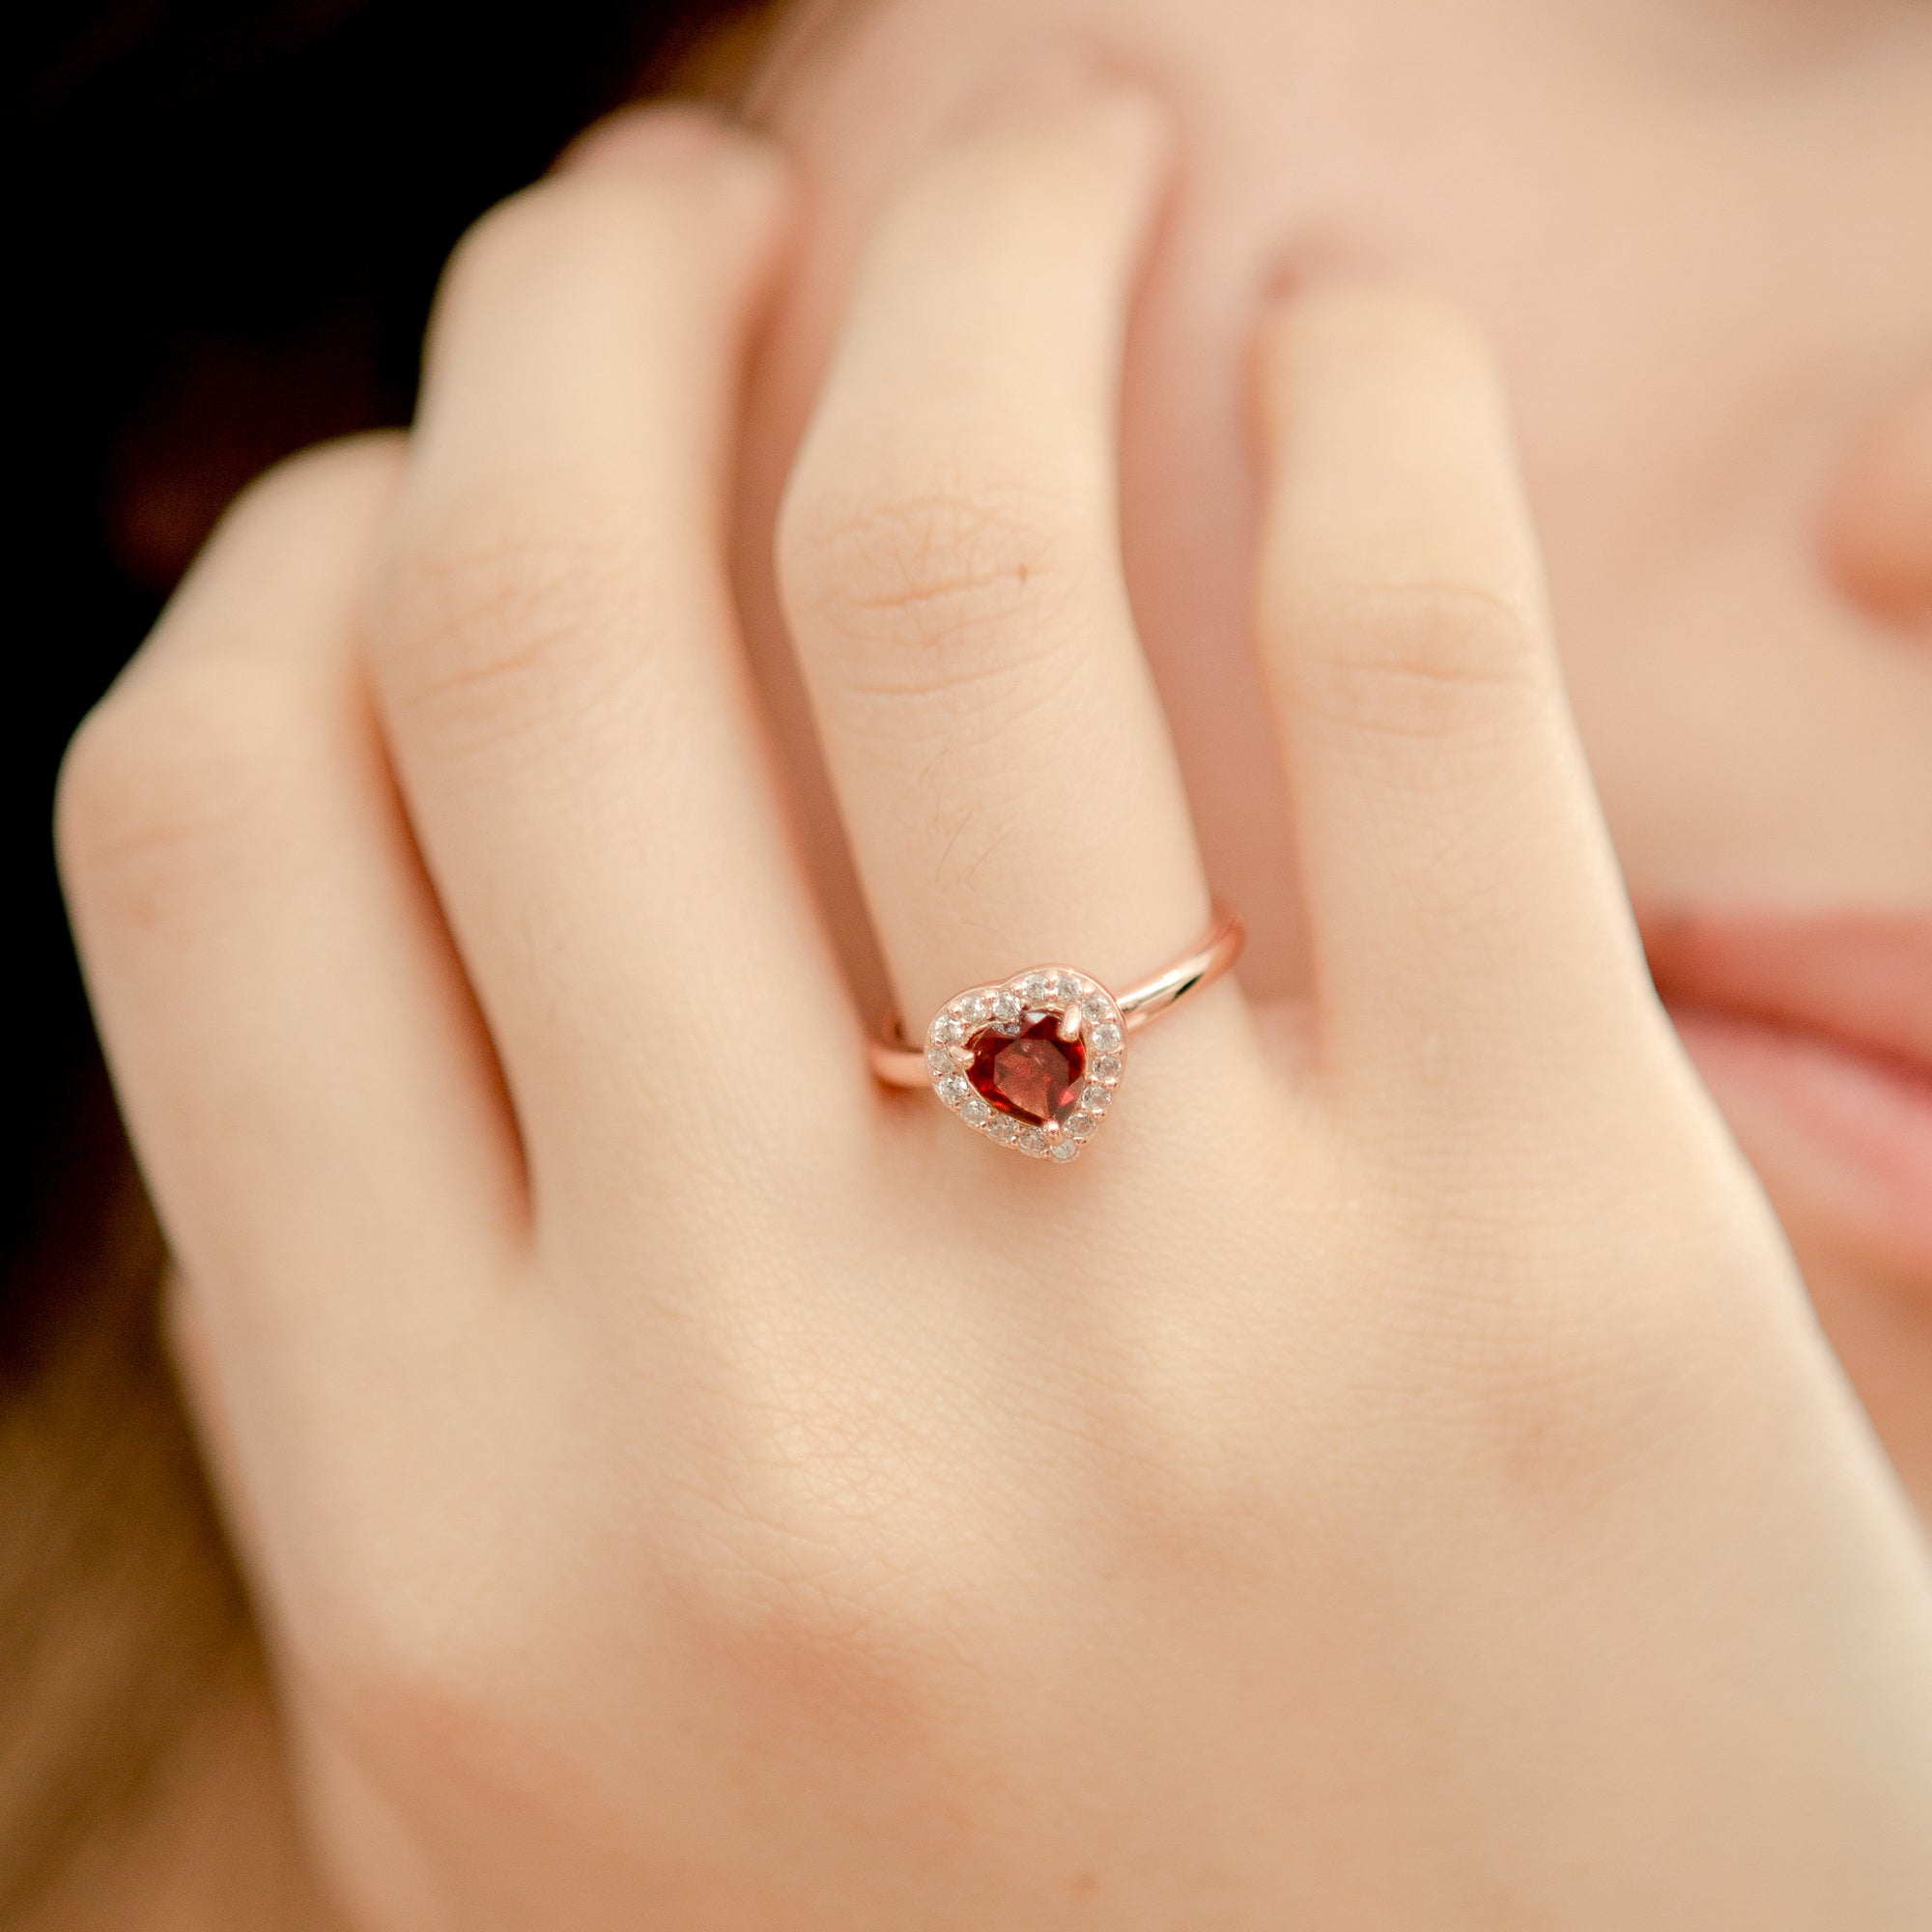 925 Silver Luxe Series Ring - Leanne (Garnet) - Rose Gold Plated